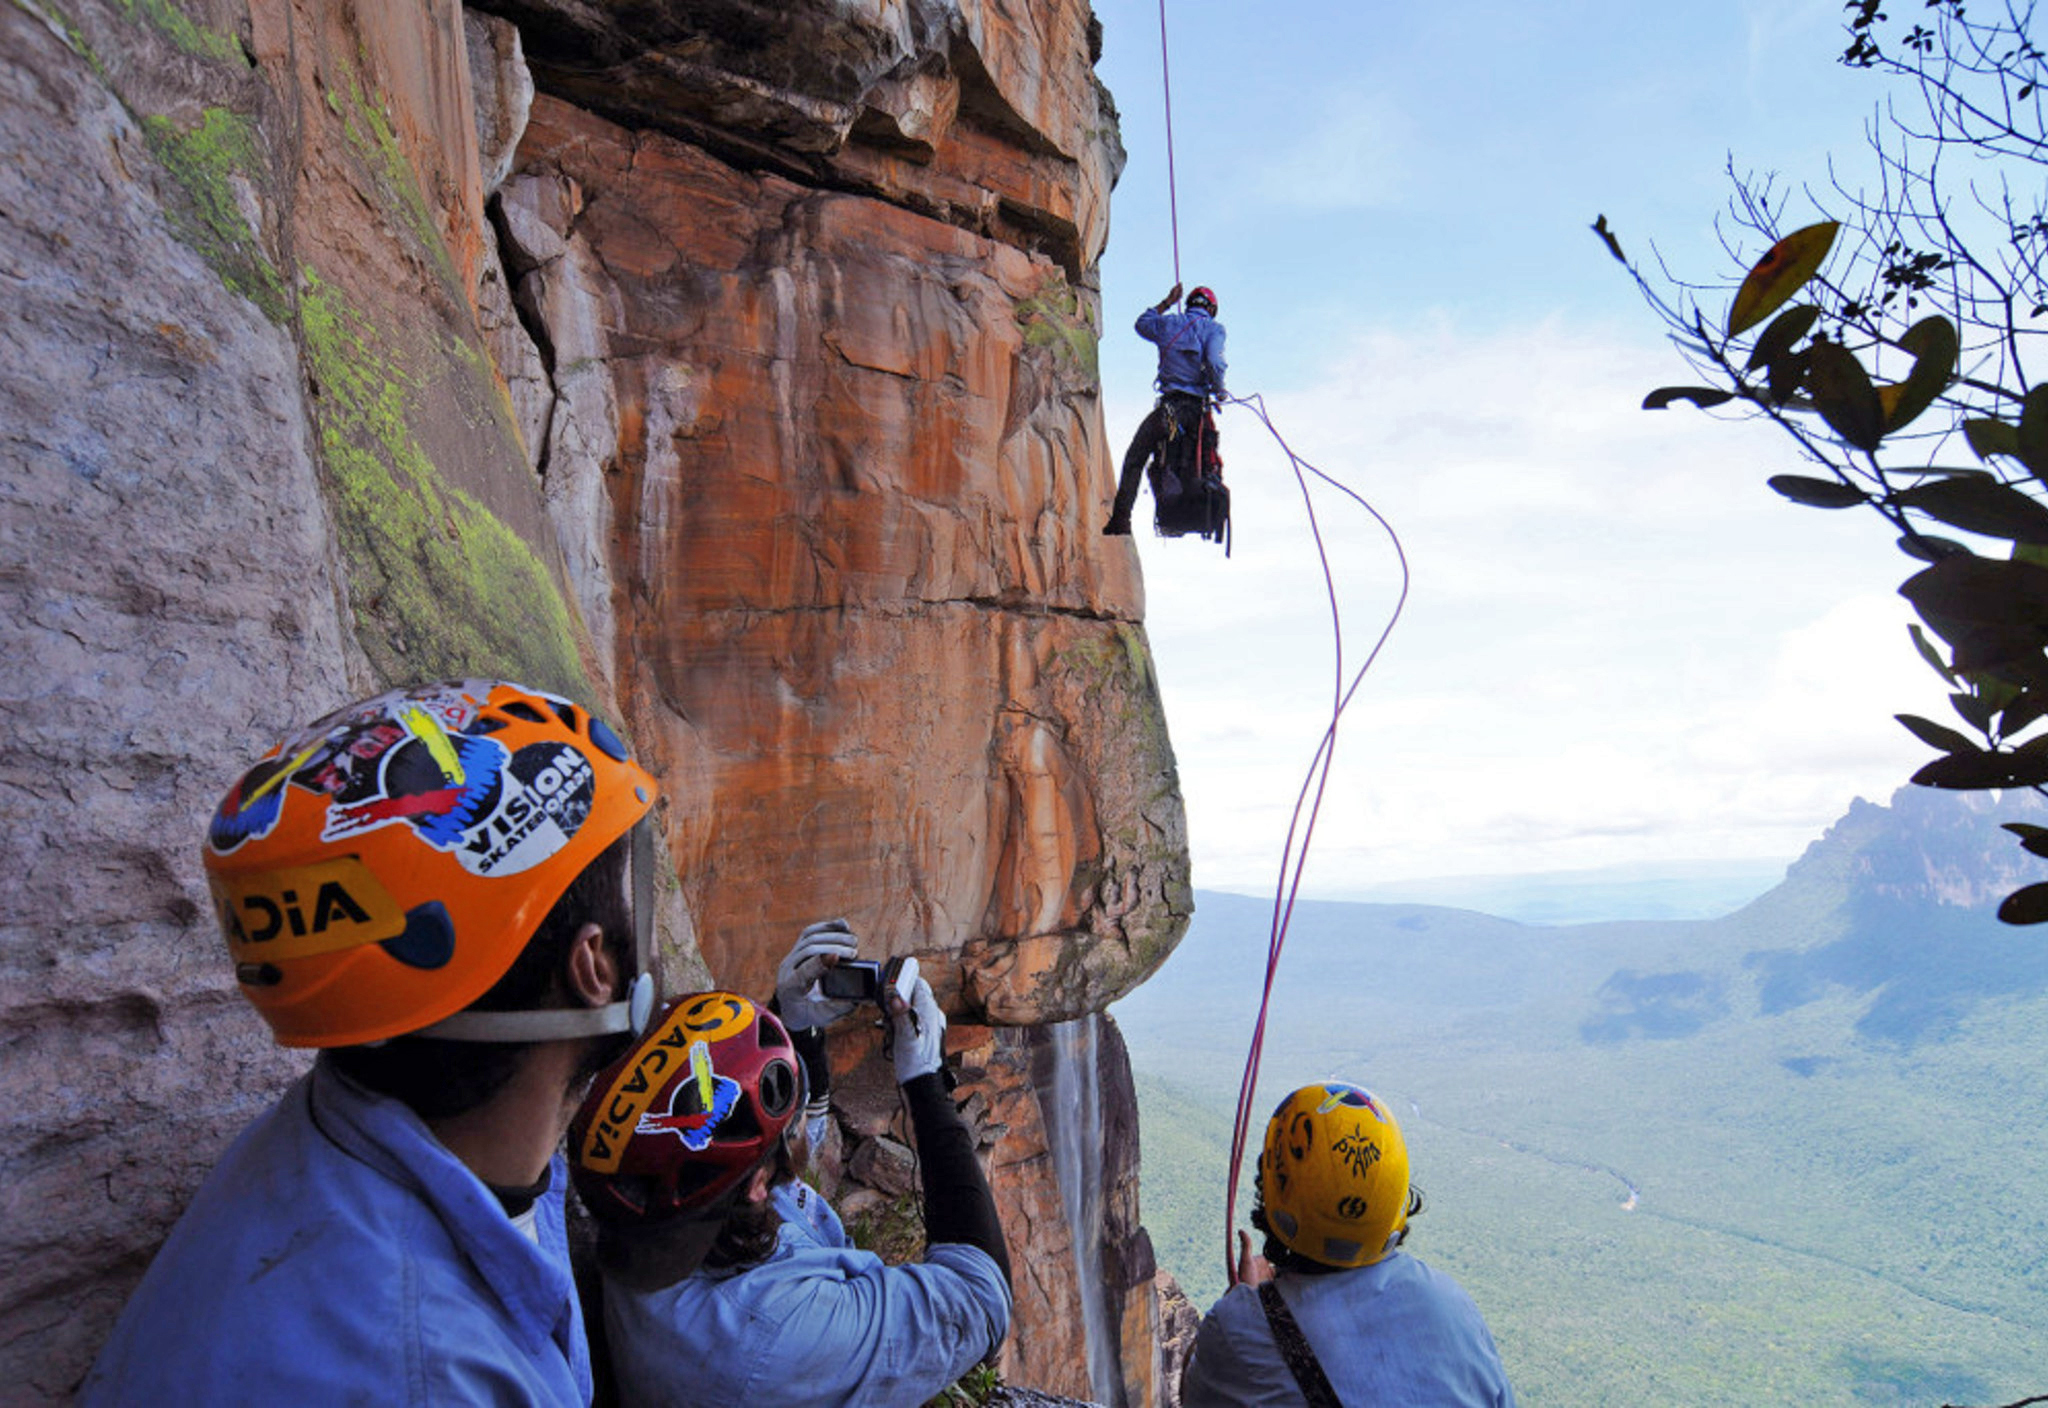 Rappelling down Angel Falls, Venezuela by Geronimo Serrano